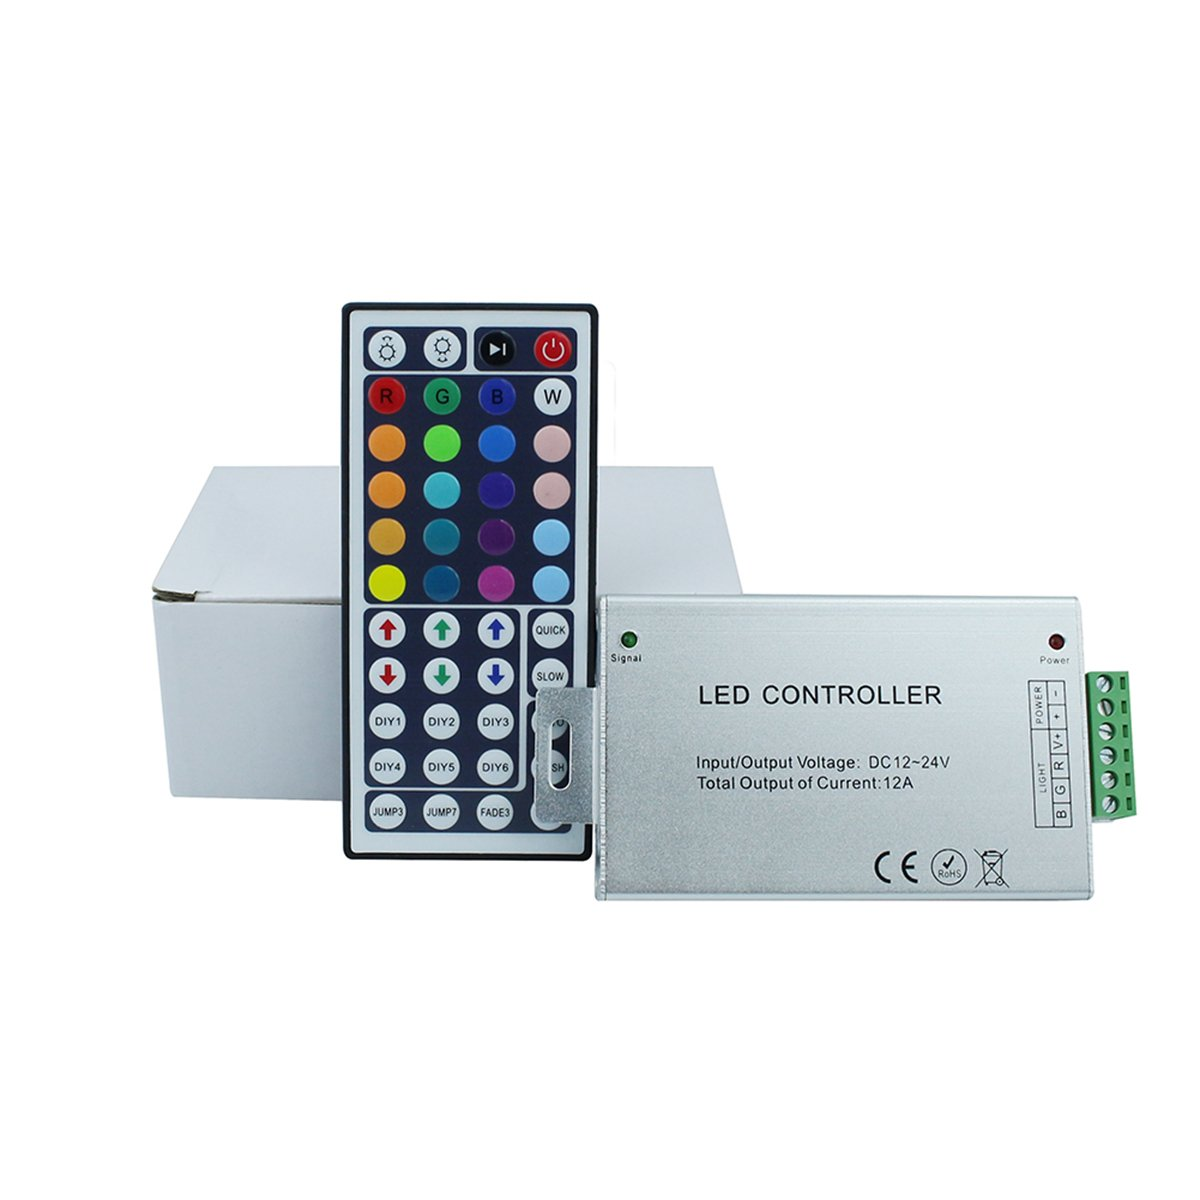 KPBOTL DC12-24V 12A RGB led controller, IR controller with 44 Key Remote control,Aluminum light controller for 3528 5050 RGB led strips by KPBOTL (Image #7)